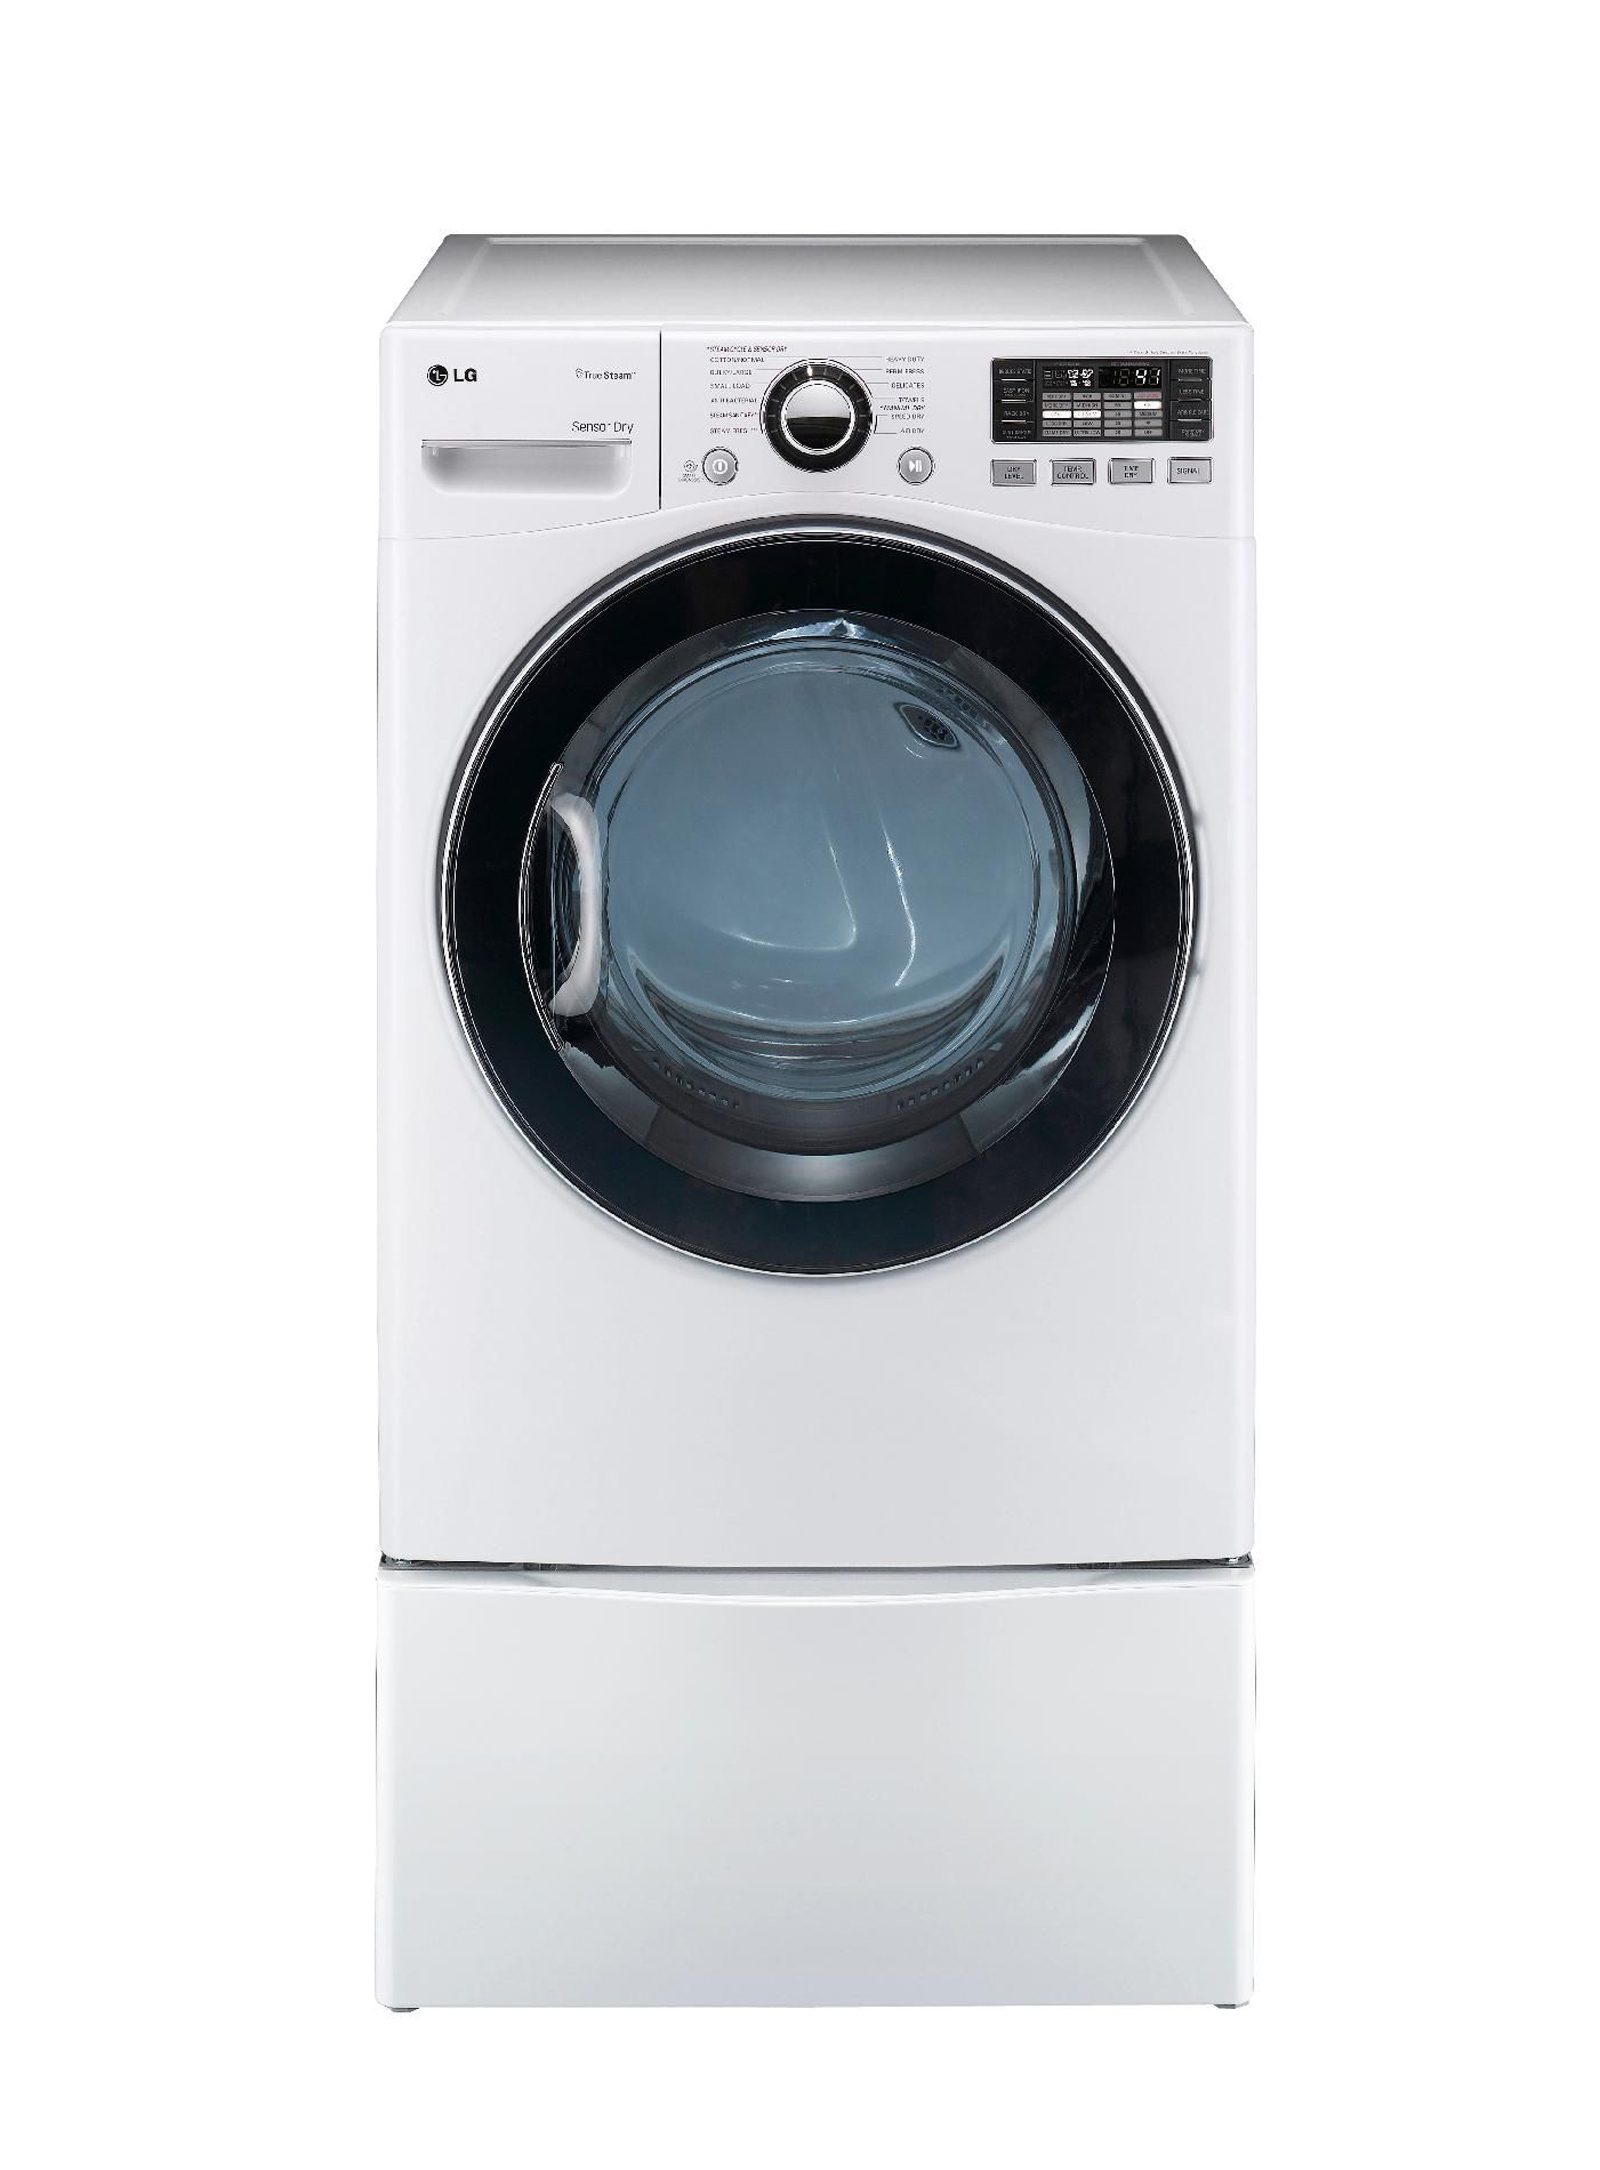 LG 7.3 cu. ft. Steam Electric Dryer w/ Sensor Dry - White